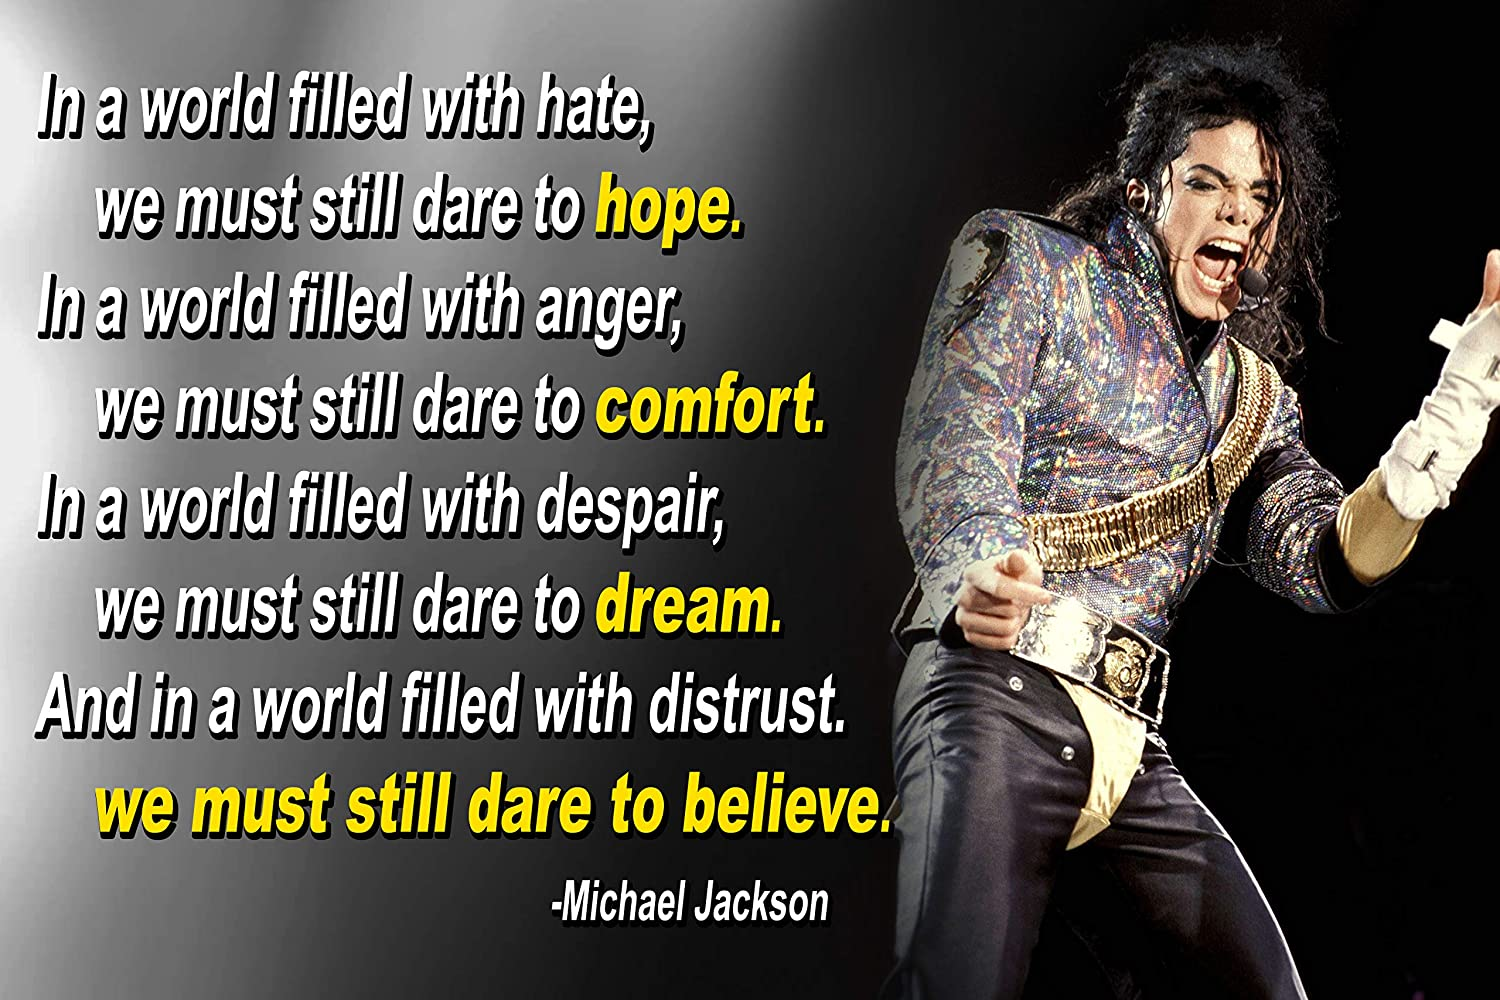 Michael Jackson Poster Quote Black History Month Classroom Décor MJ King of  Pop Quotes Wall Art Posters Memorabilia Decorations Birthday Gifts ...